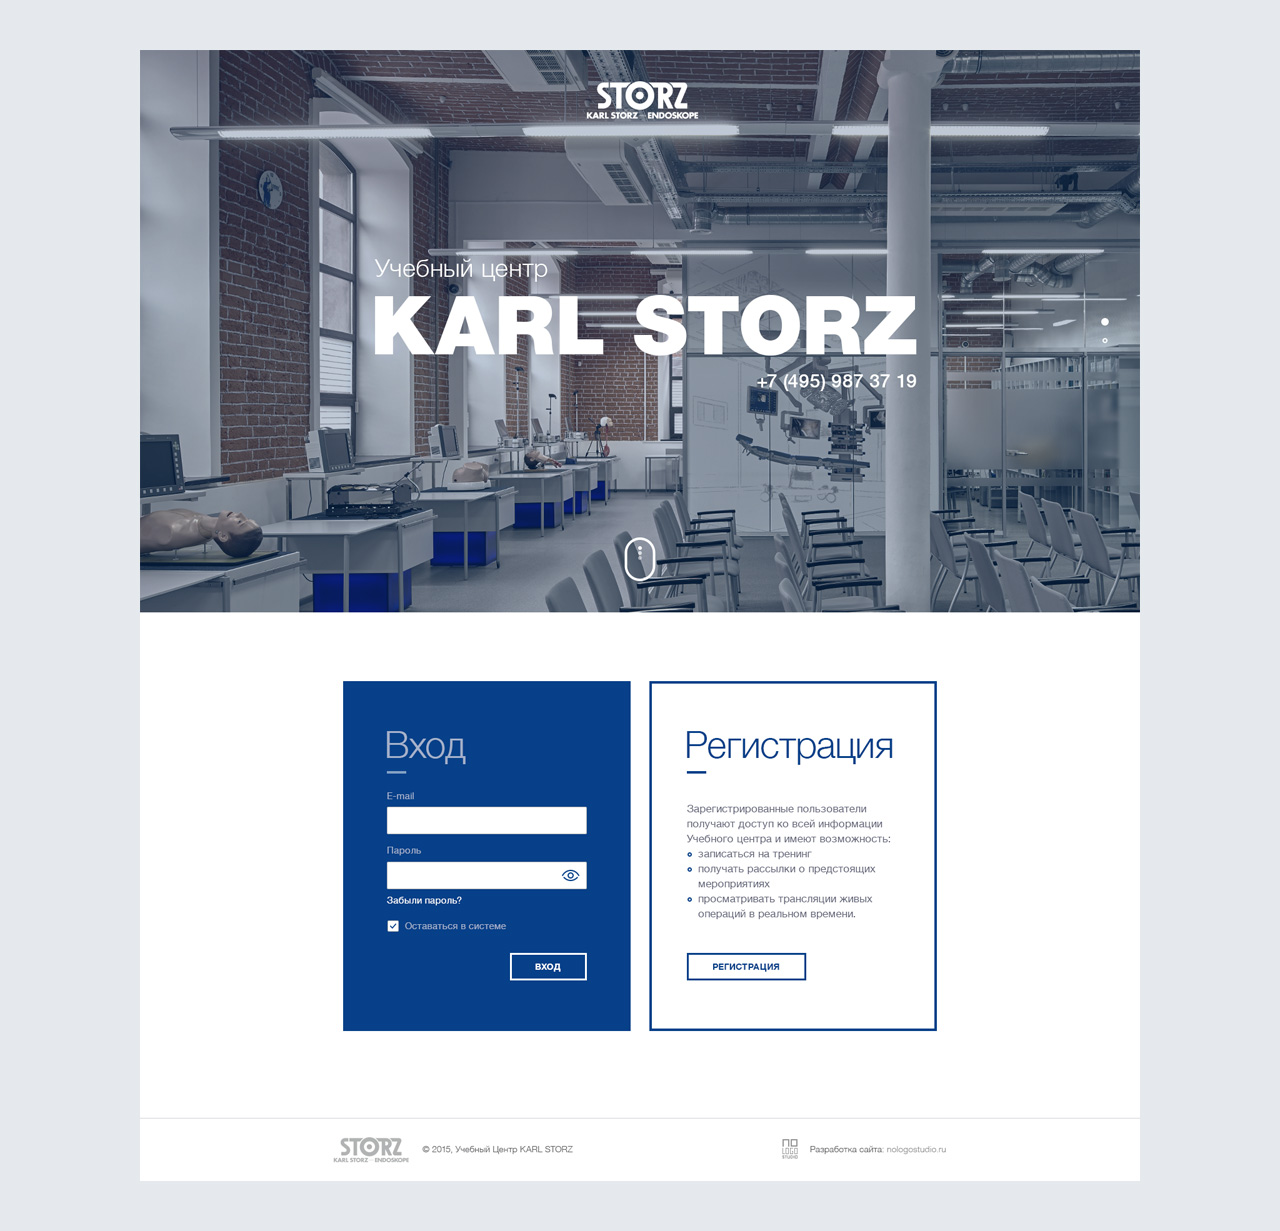 KARL STORZ_2 © No Logo Studio